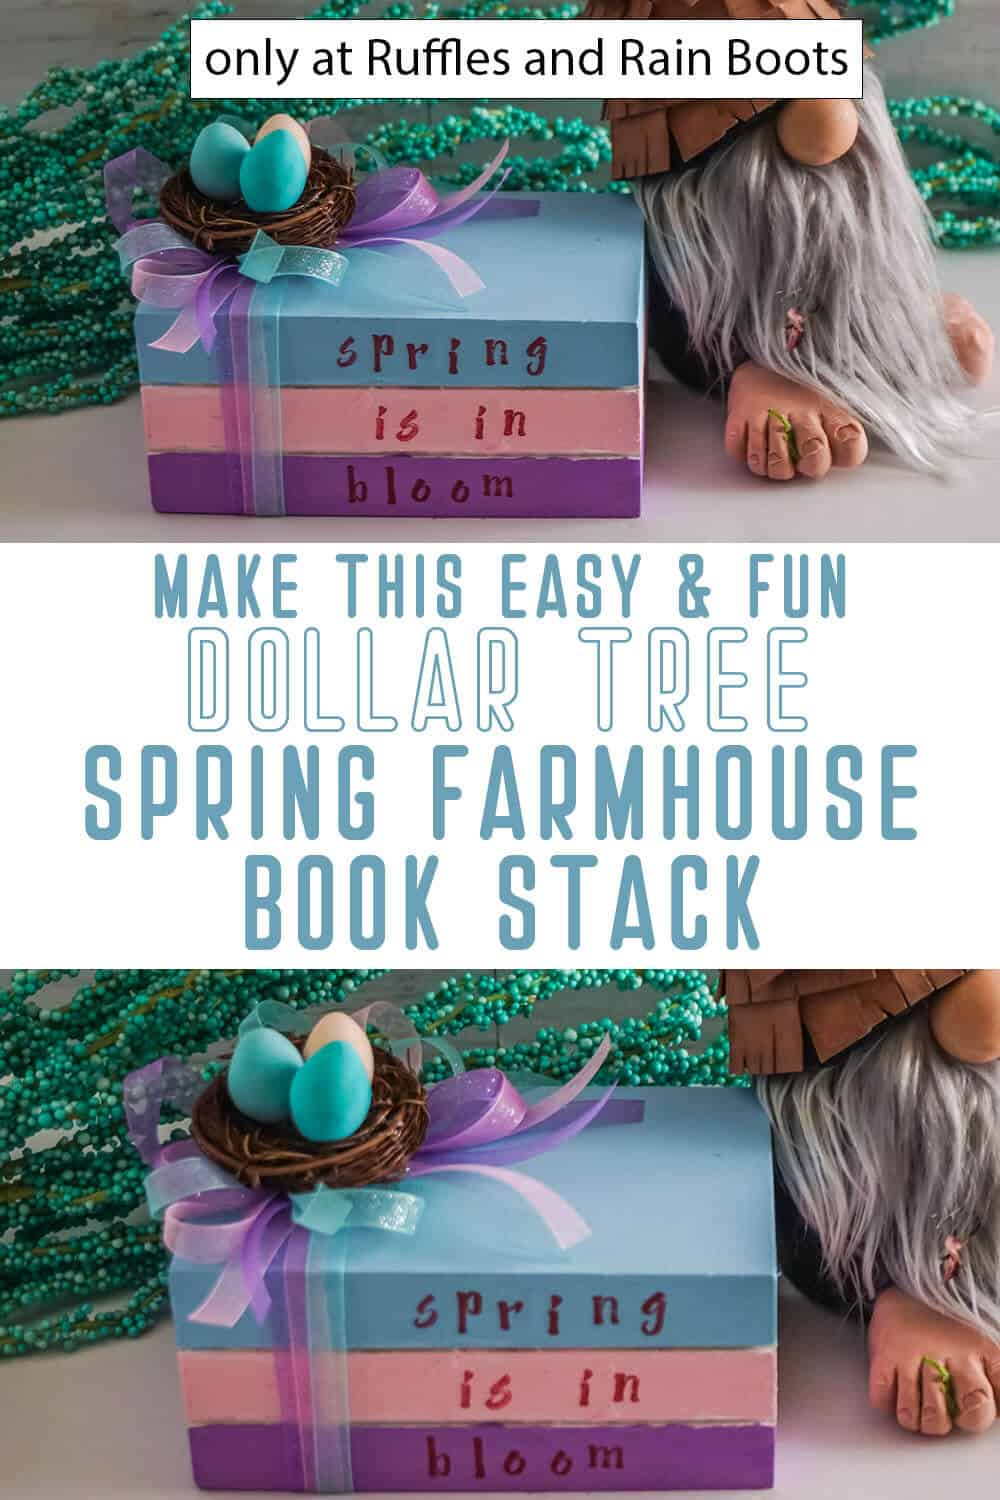 photo collage of spring farmhouse book stack dollar tree craft with text which reads make this easy & fun dollar tree spring farmhouse book stack